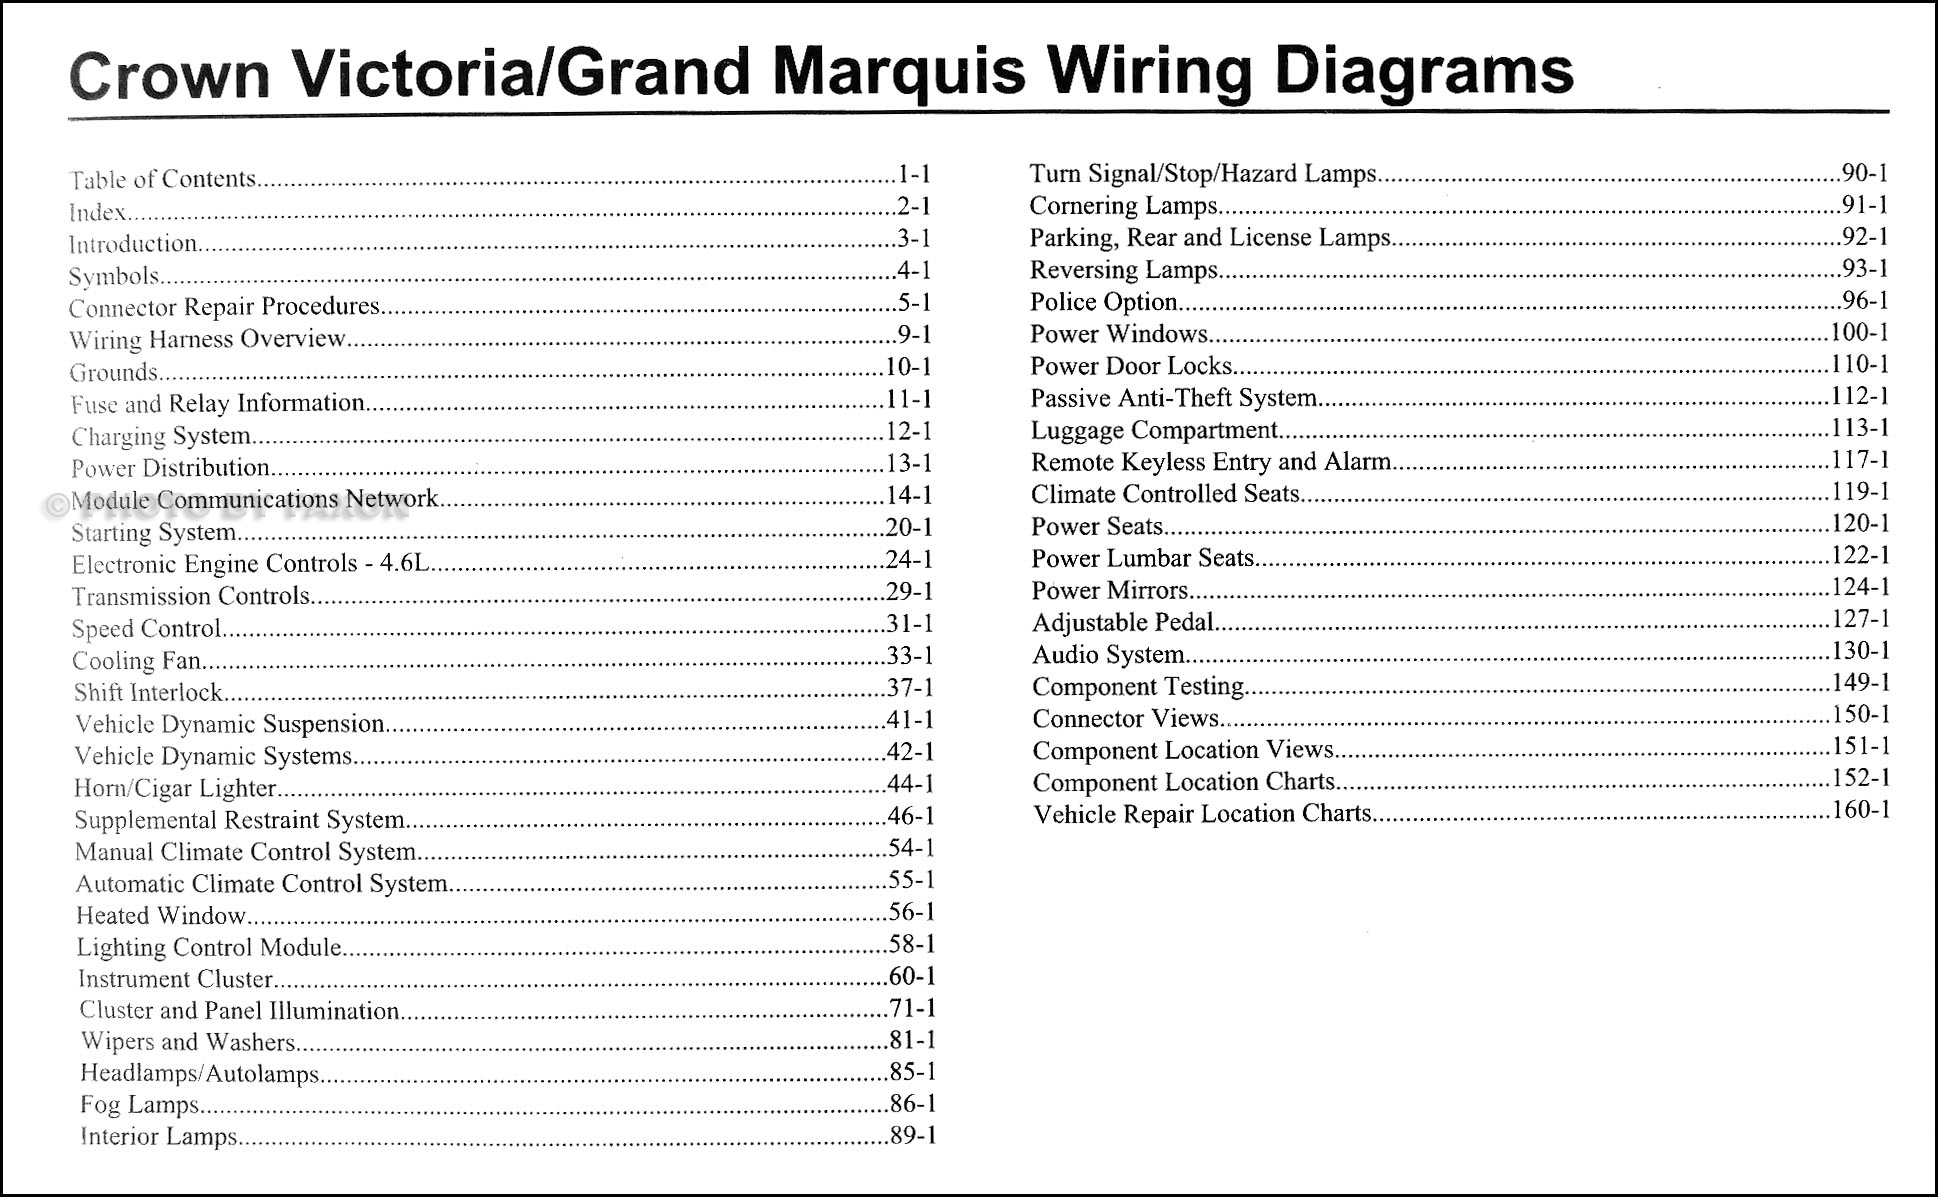 2009FordCrownVictoriaOWD TOC 2009 crown victoria & grand marquis original wiring diagram manual mercury grand marquis radio wiring diagram at mr168.co